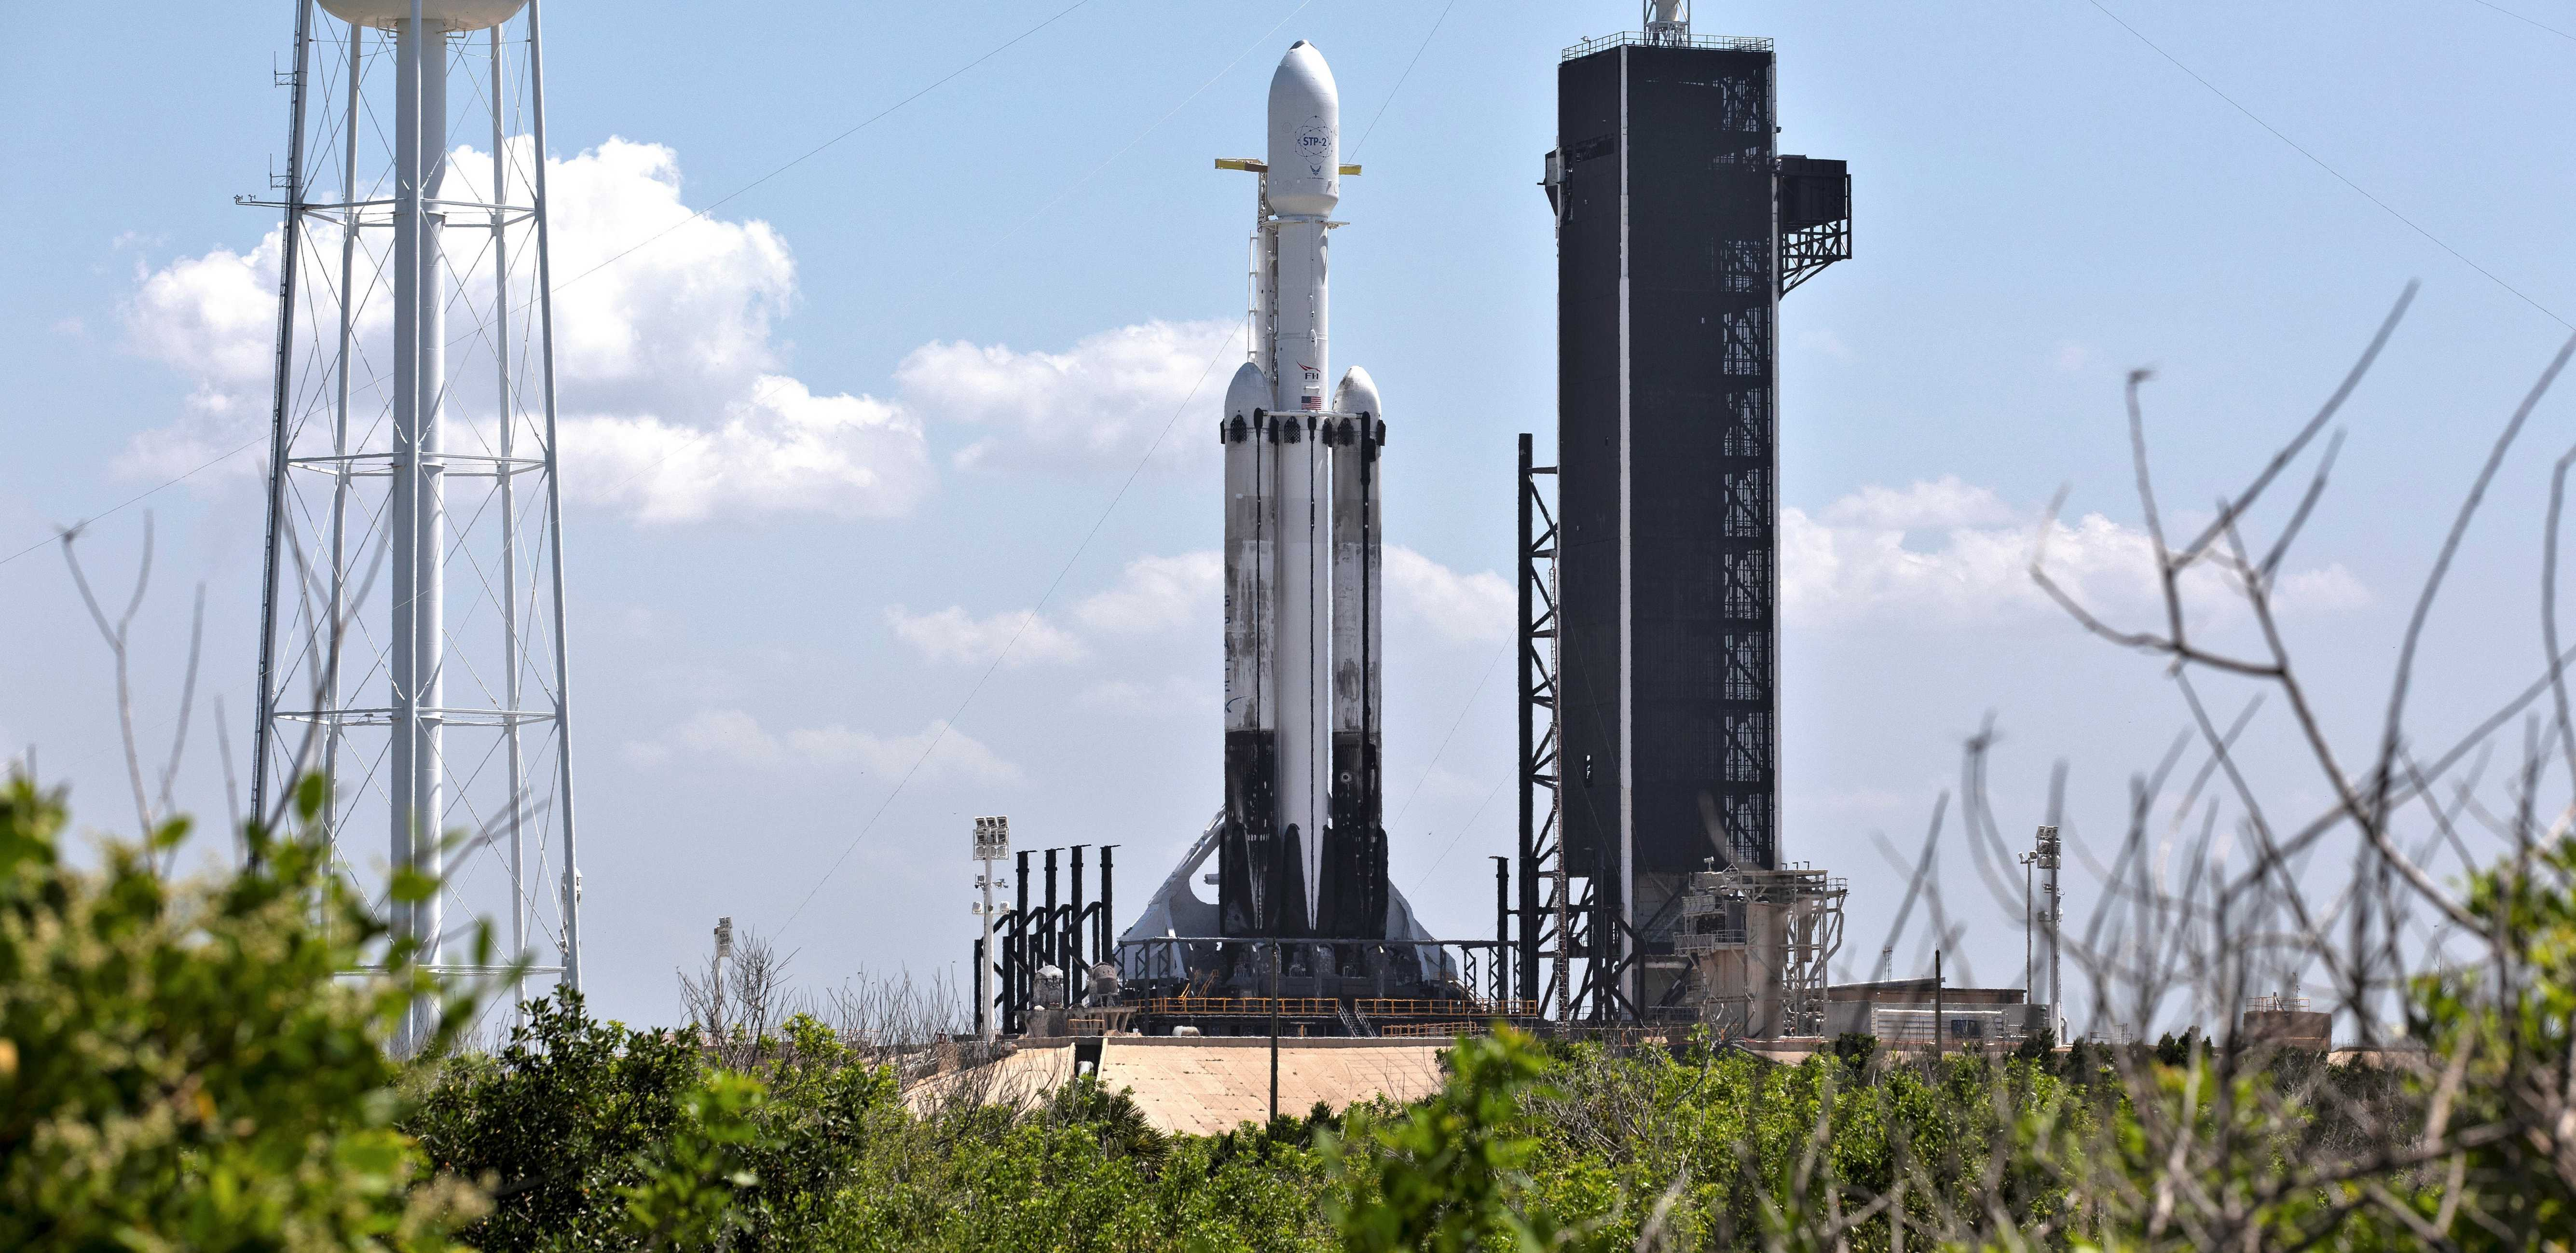 Falcon Heavy Flight 3 made use of both flight-proven side boosters and a new center core. Note the scorched landing legs and sooty exteriors. (SpaceX)